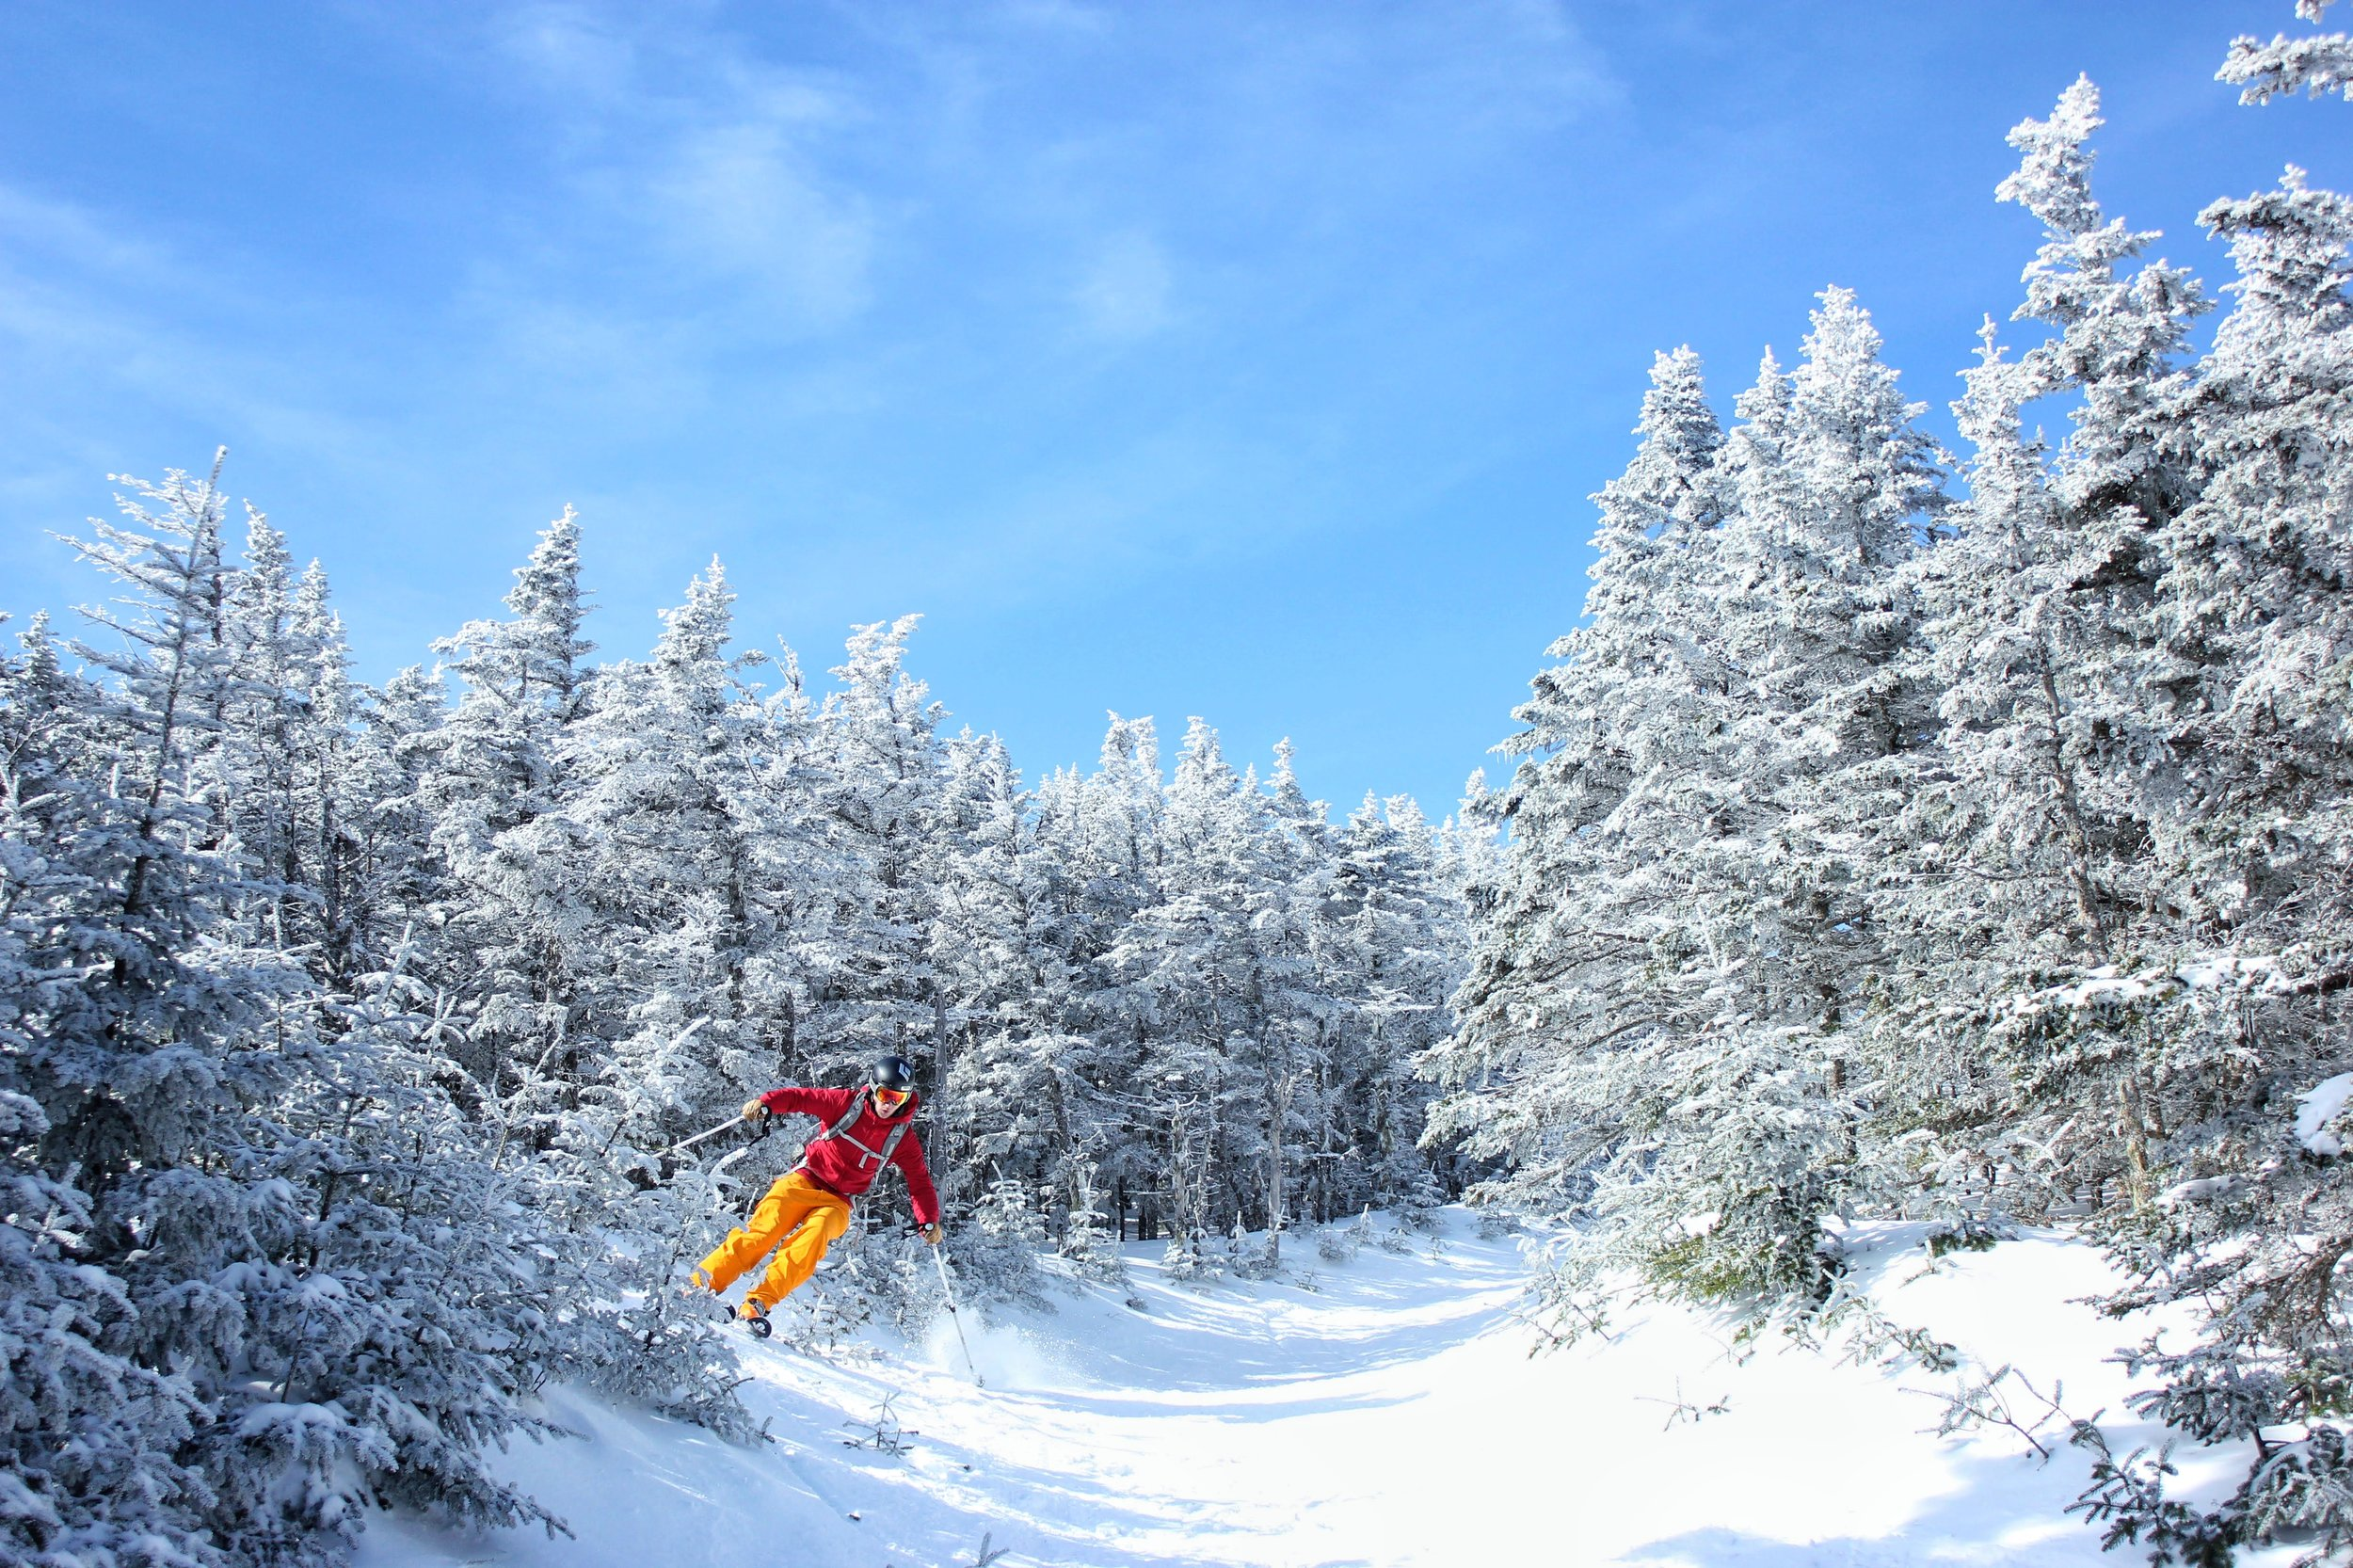 Where to Find the Best Backcountry Skiing in the East